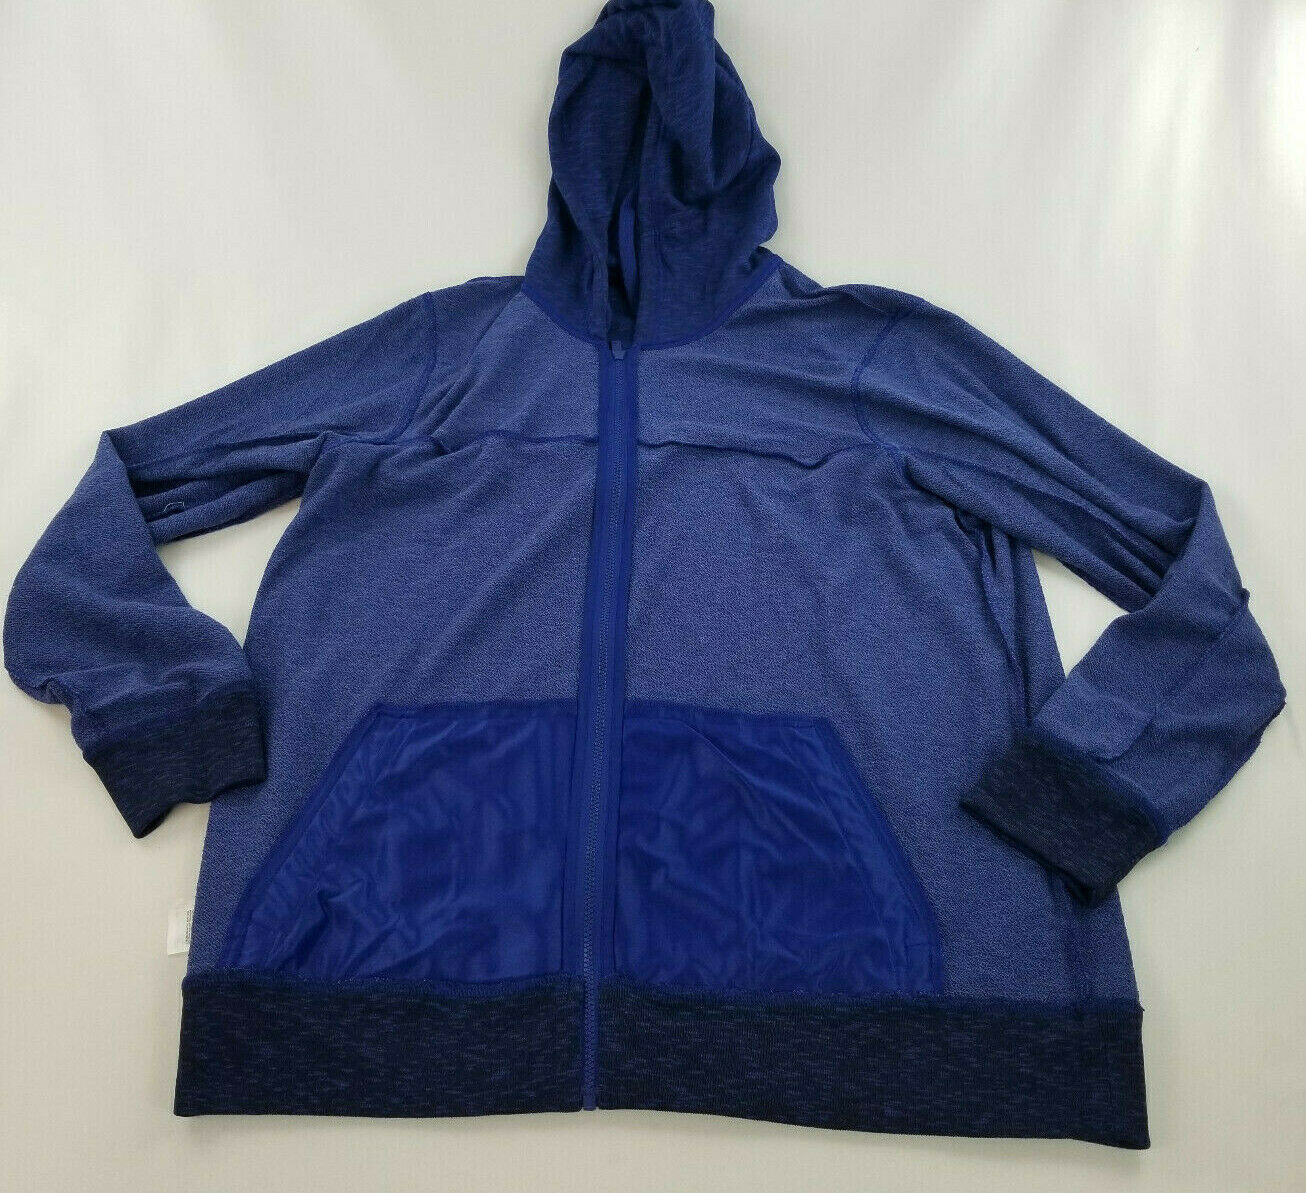 new ADIDAS men jacket hoodie full zip CW9658 blue 2XL MSRP $75 image 9